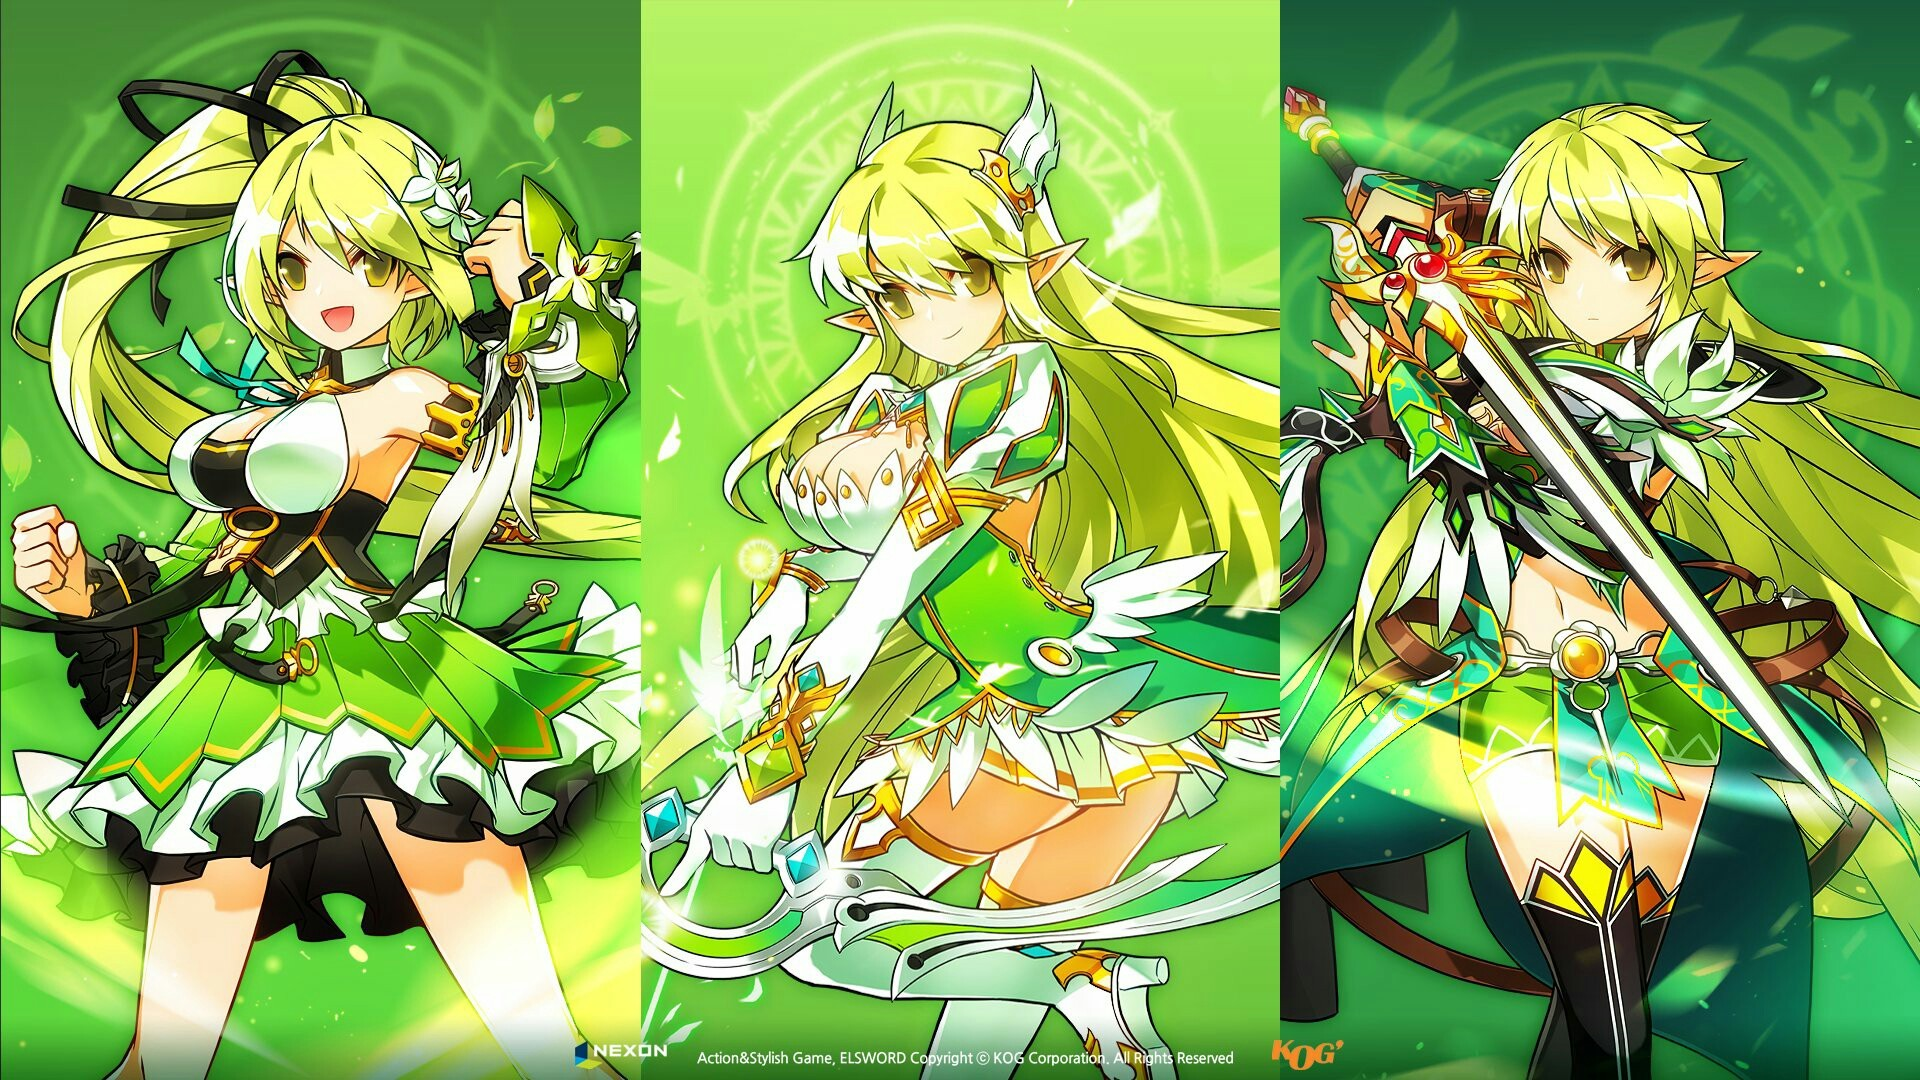 Elsword Lord Knight Wallpaper 63 images 1920x1080